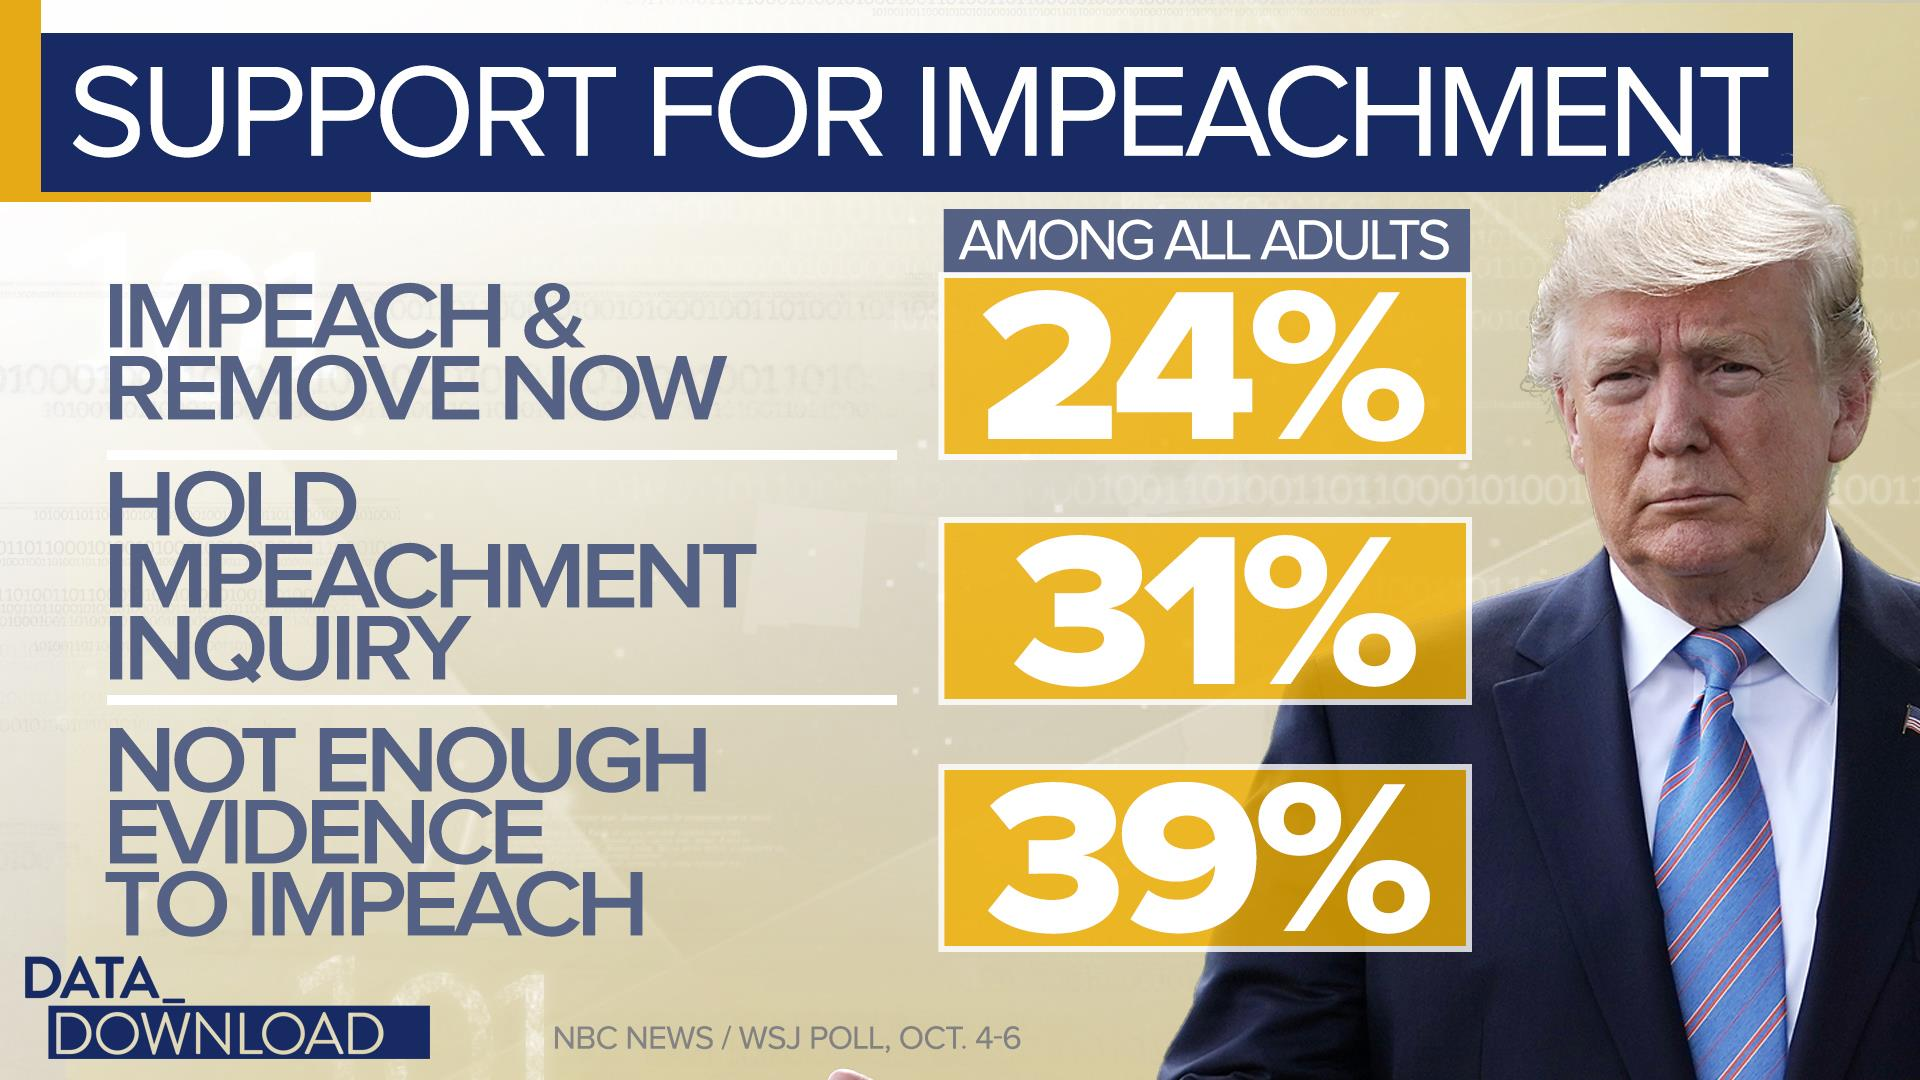 Polls show support for impeachment but not removal, yet